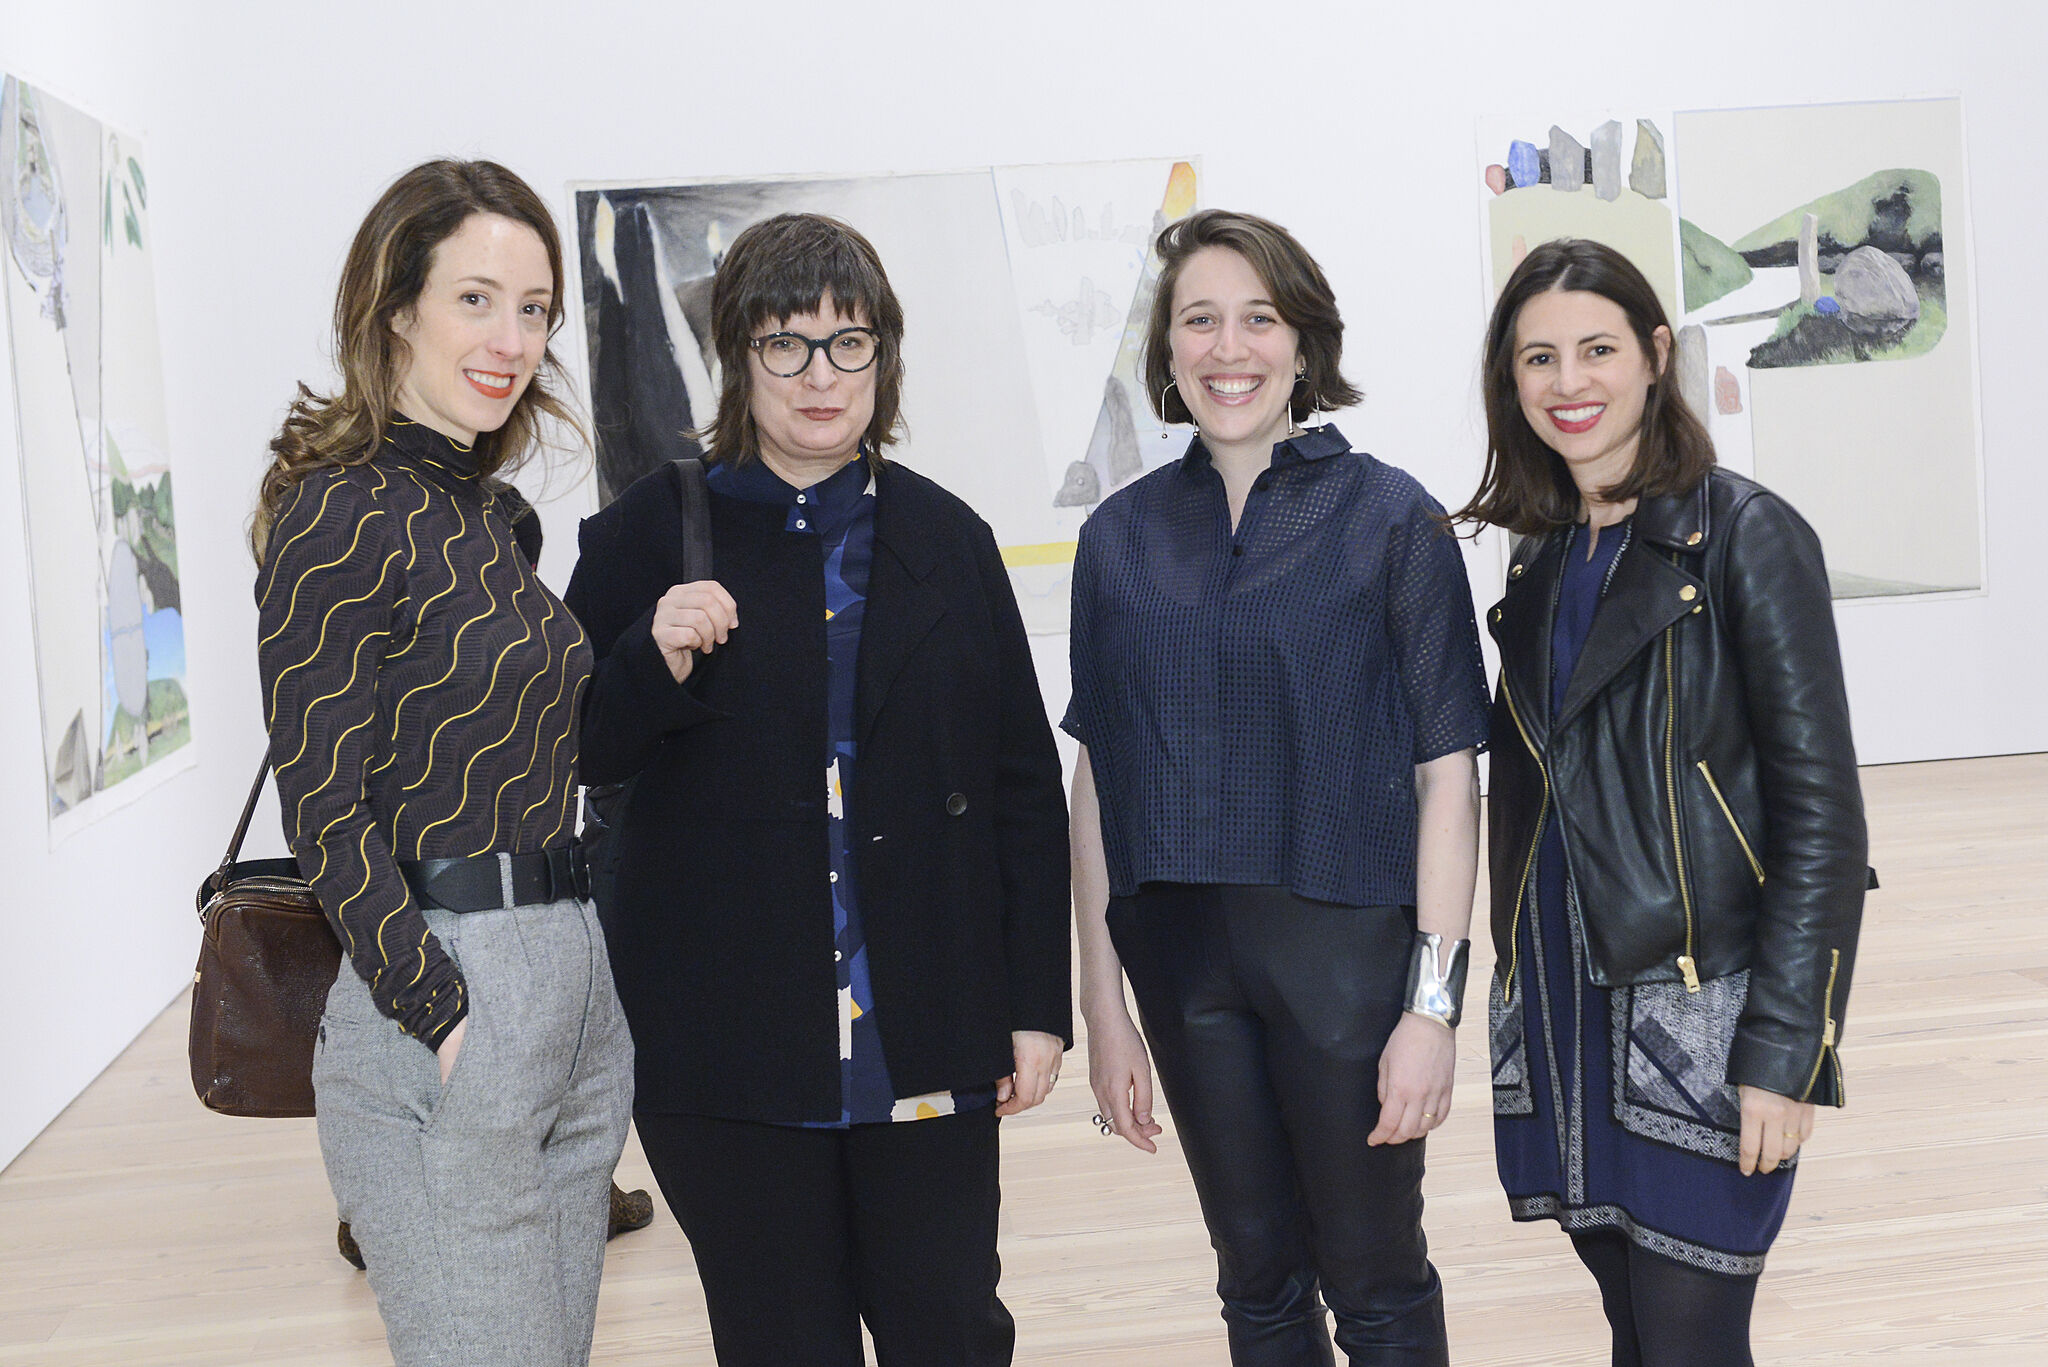 Assistant curator and Contemporaries liaison Laura Phipps and assistant curator Elisabeth Sherman with 2017 Biennial artists Aliza Nisenbaum and Carrie Moyer.